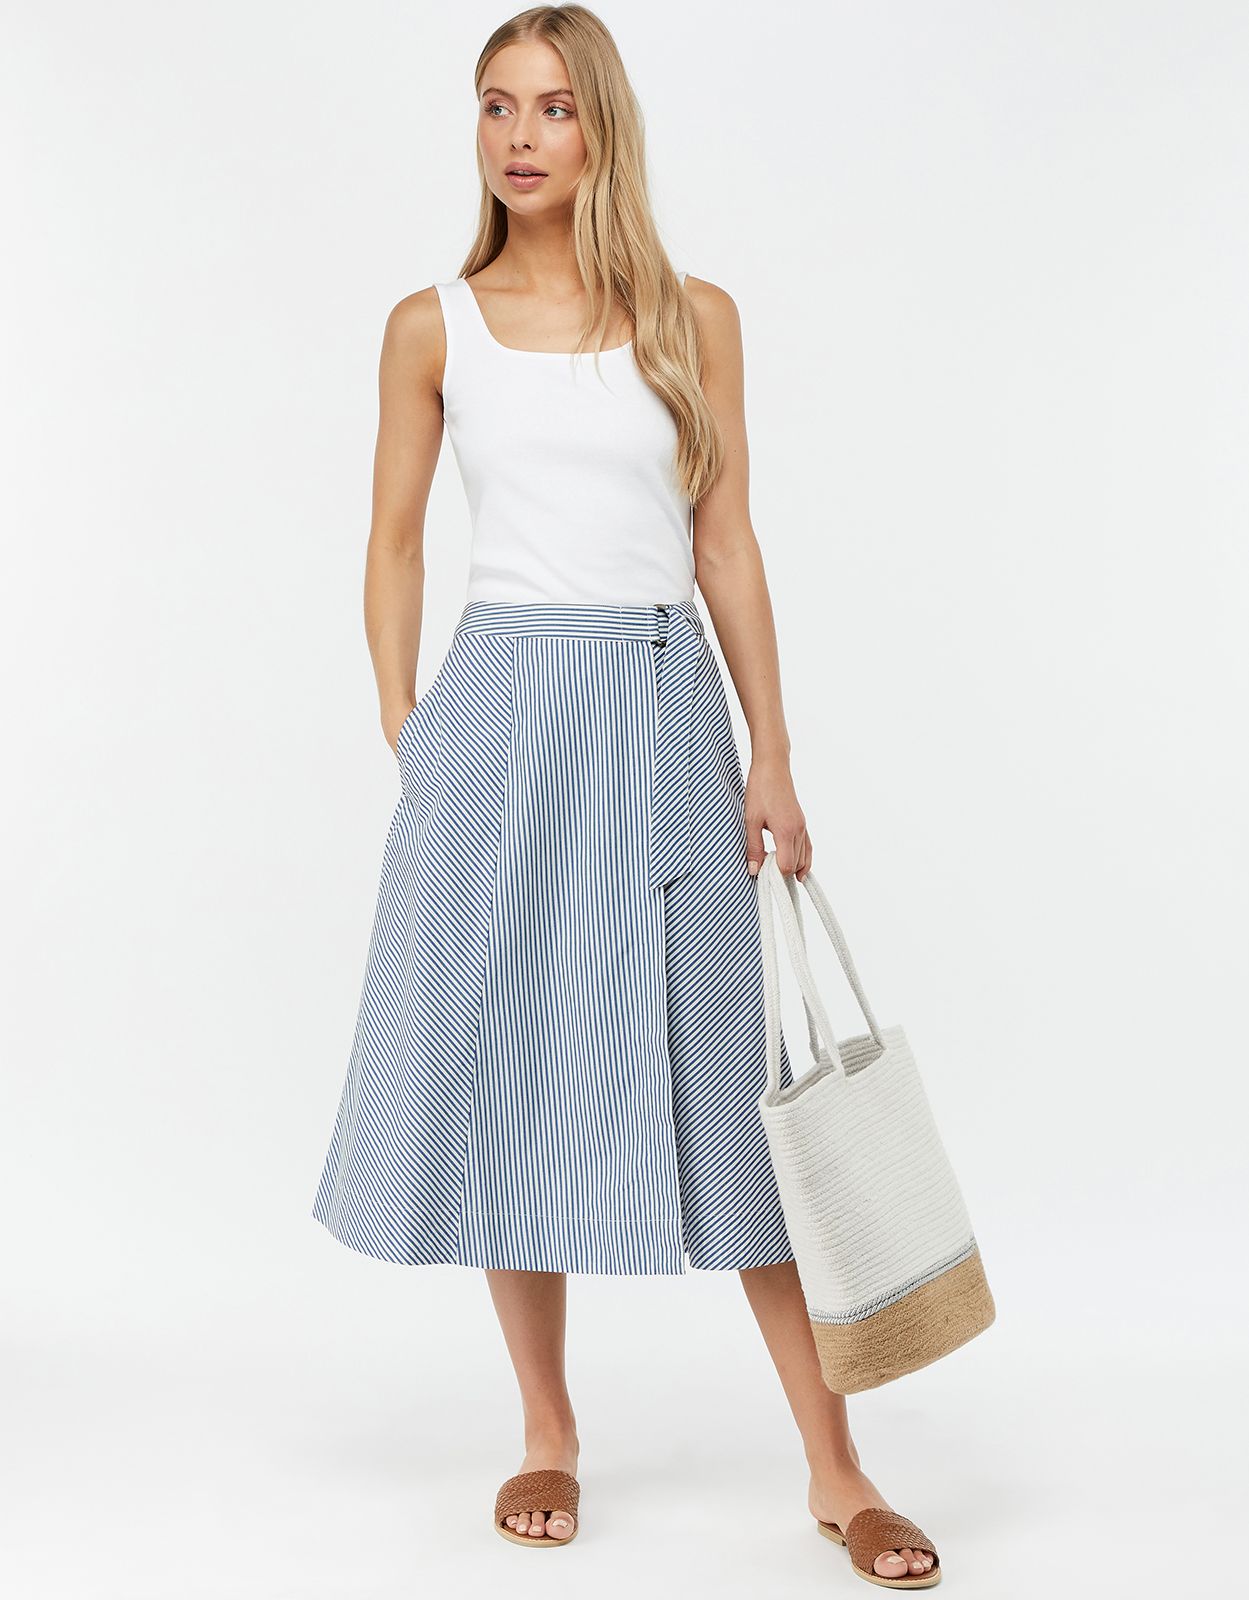 09abdb5853 Skirts : Monsoon Clothing, Dresses Outlet, Up To 70% Off. Accept ...